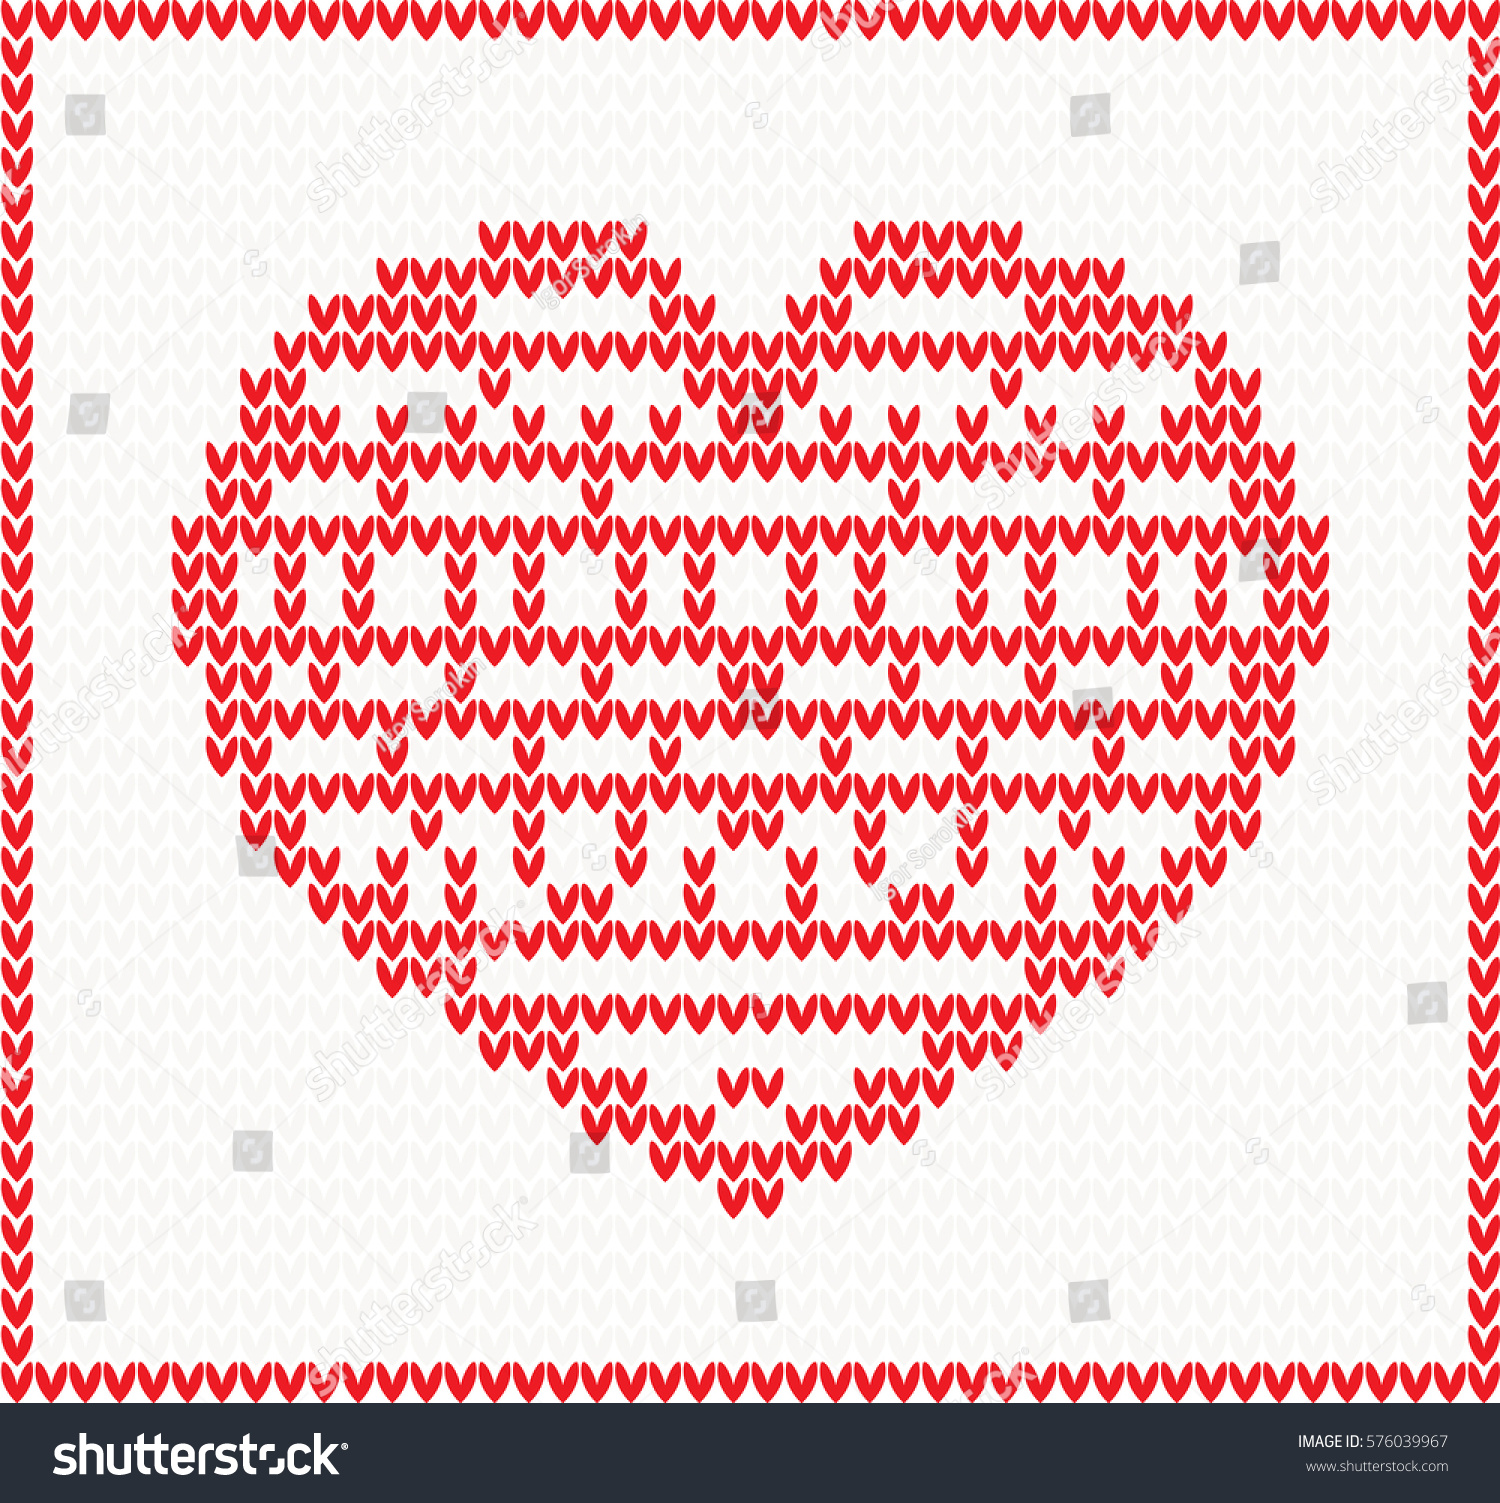 Knitted Pattern Red Heart Christmas Valentines Stock Vector ...